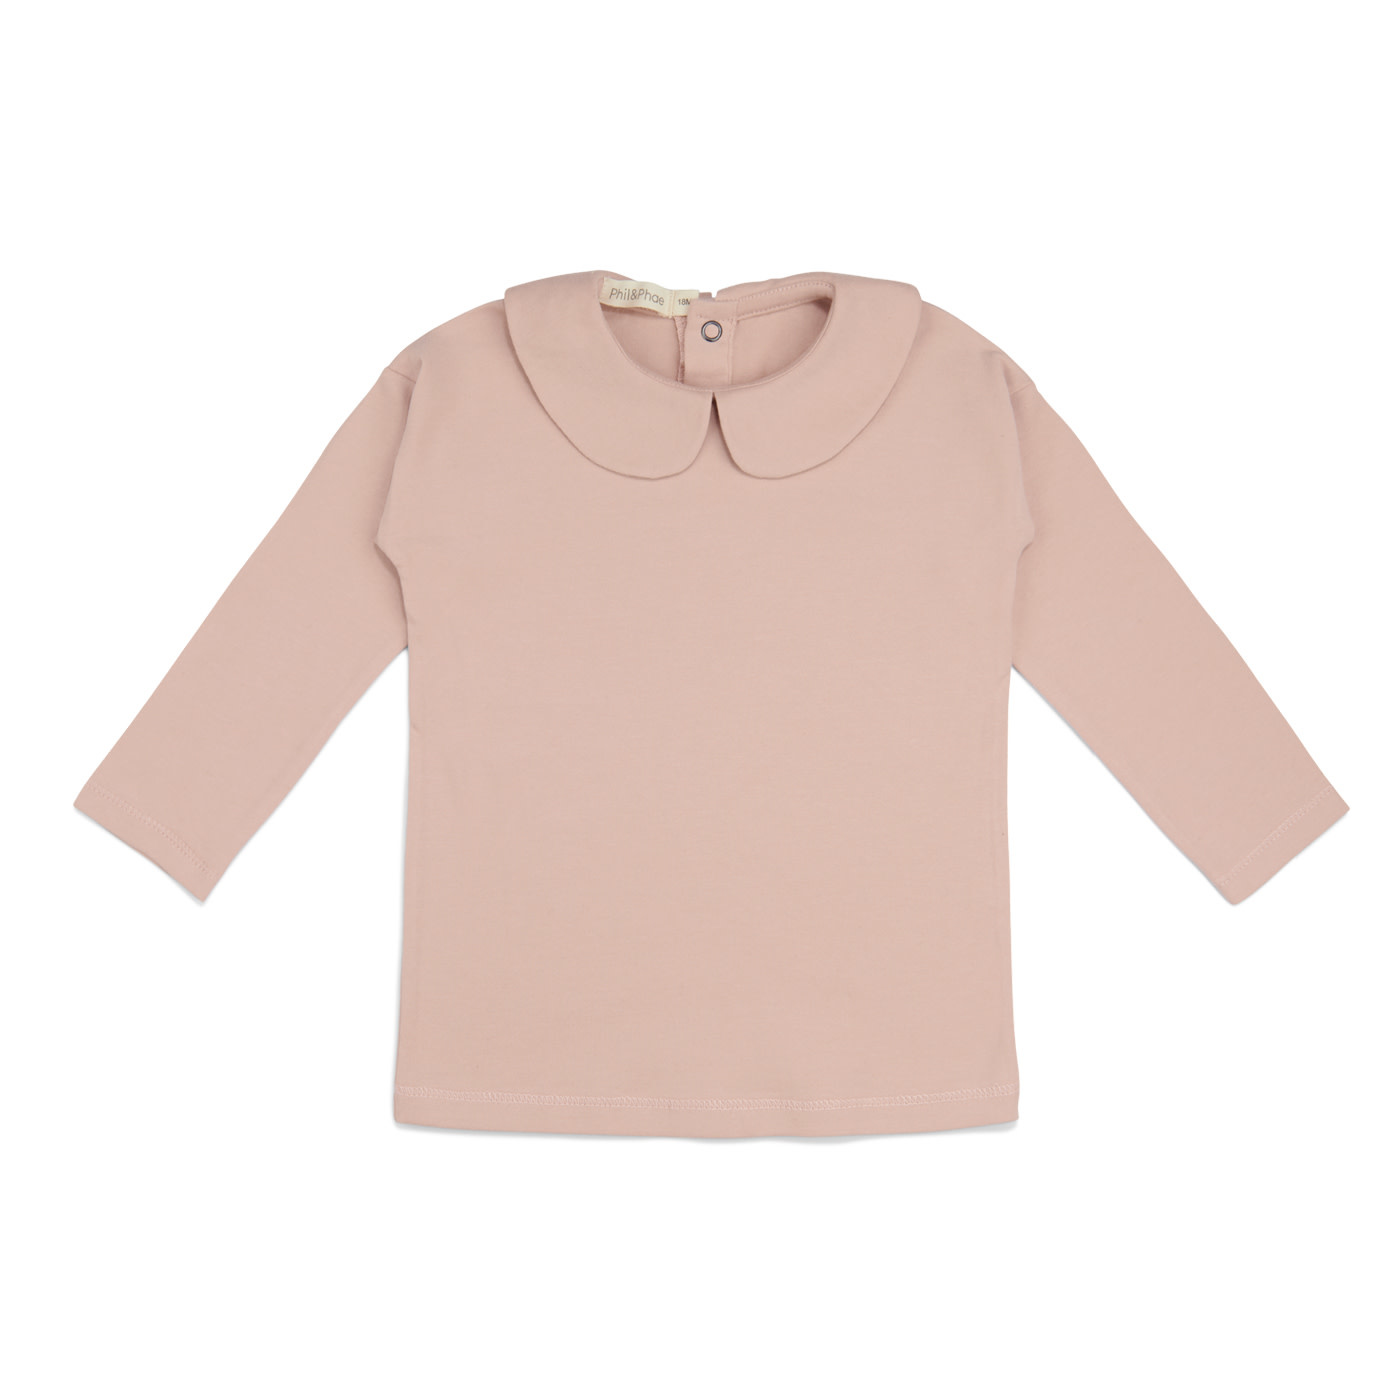 Phil&Phae Phil & Phae - Collar Tee Longsleeve Blush